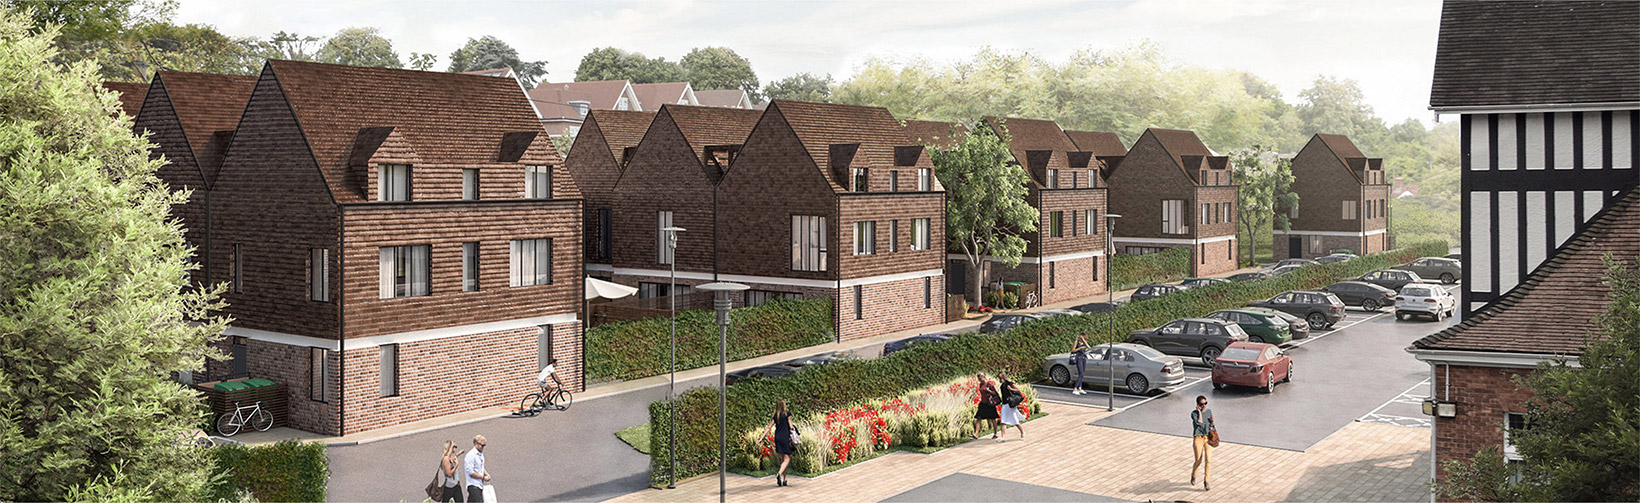 Render of kingswood development